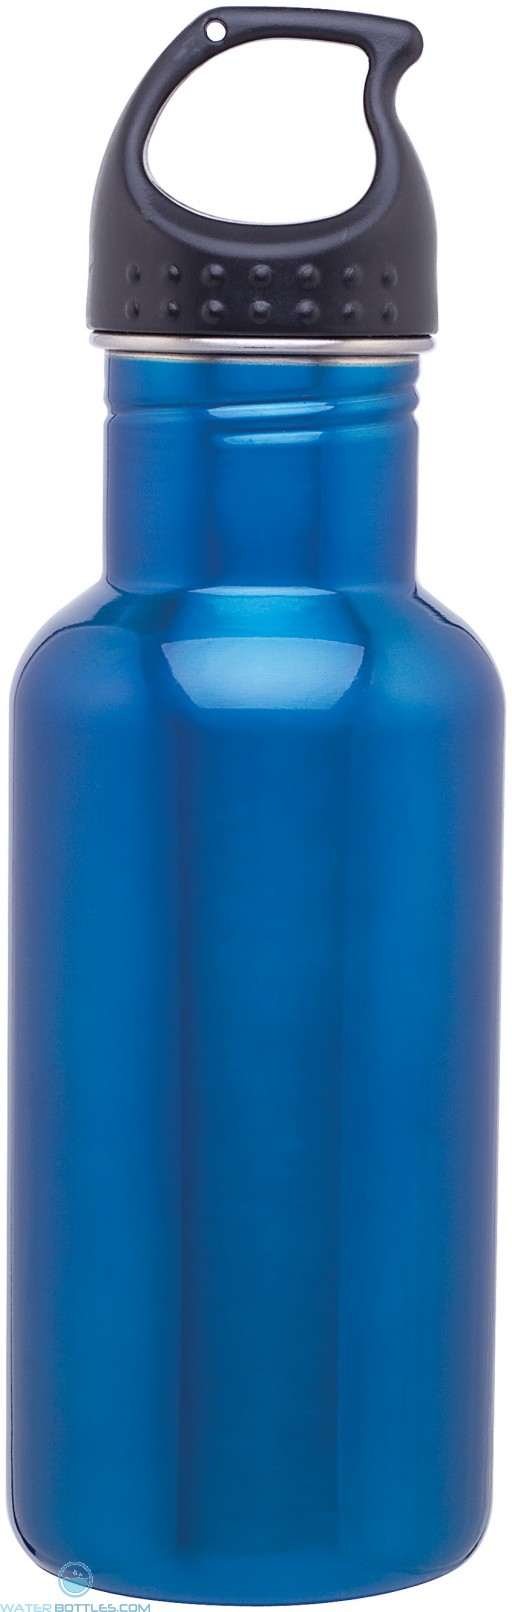 H2Go Stainless Steel Bolt | 18 oz - Electric Blue